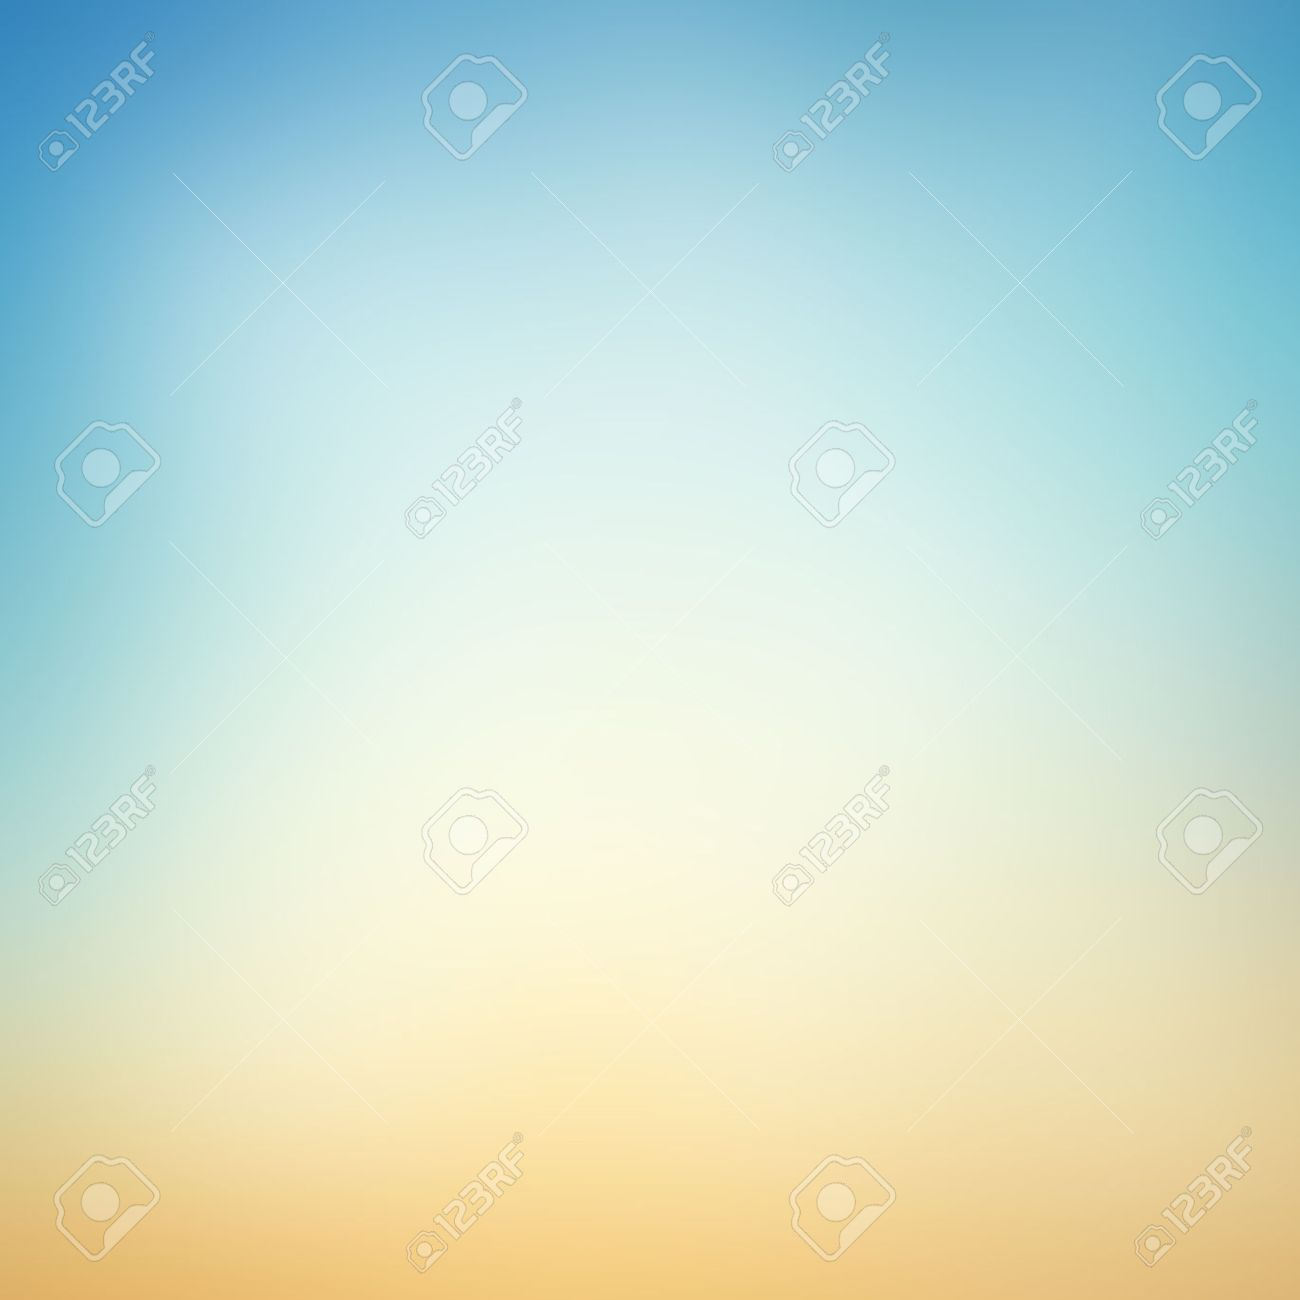 background color gradient from blue to orange - 46921520